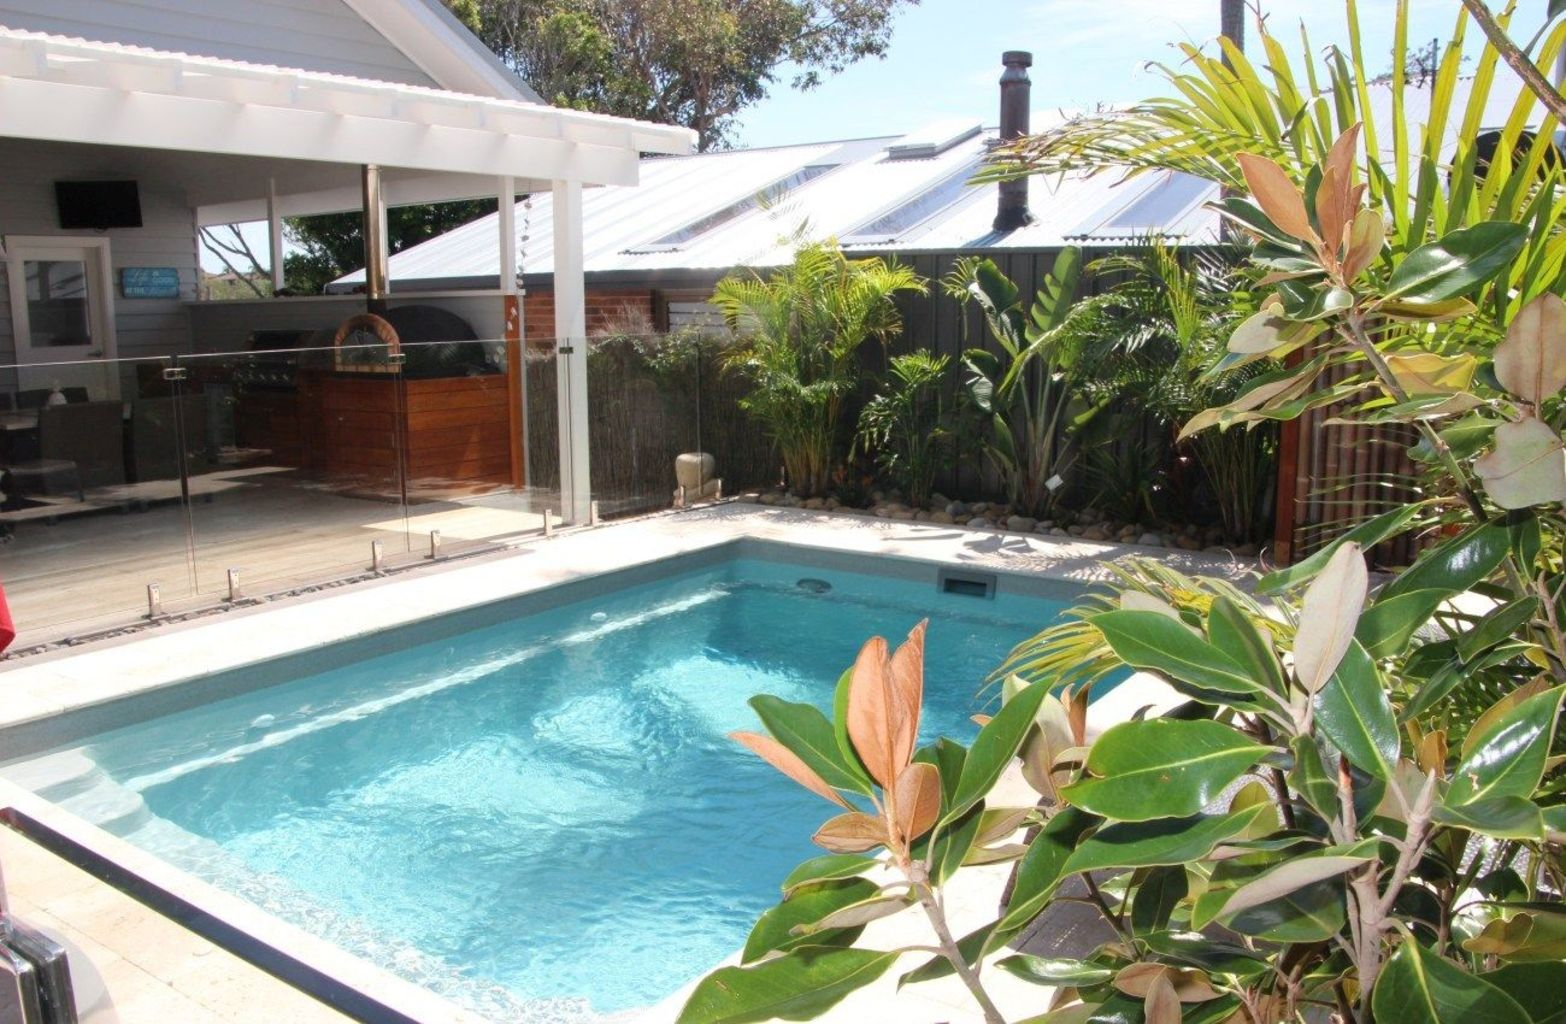 Small swimming pools made for small spaces and tight budgets Part 34